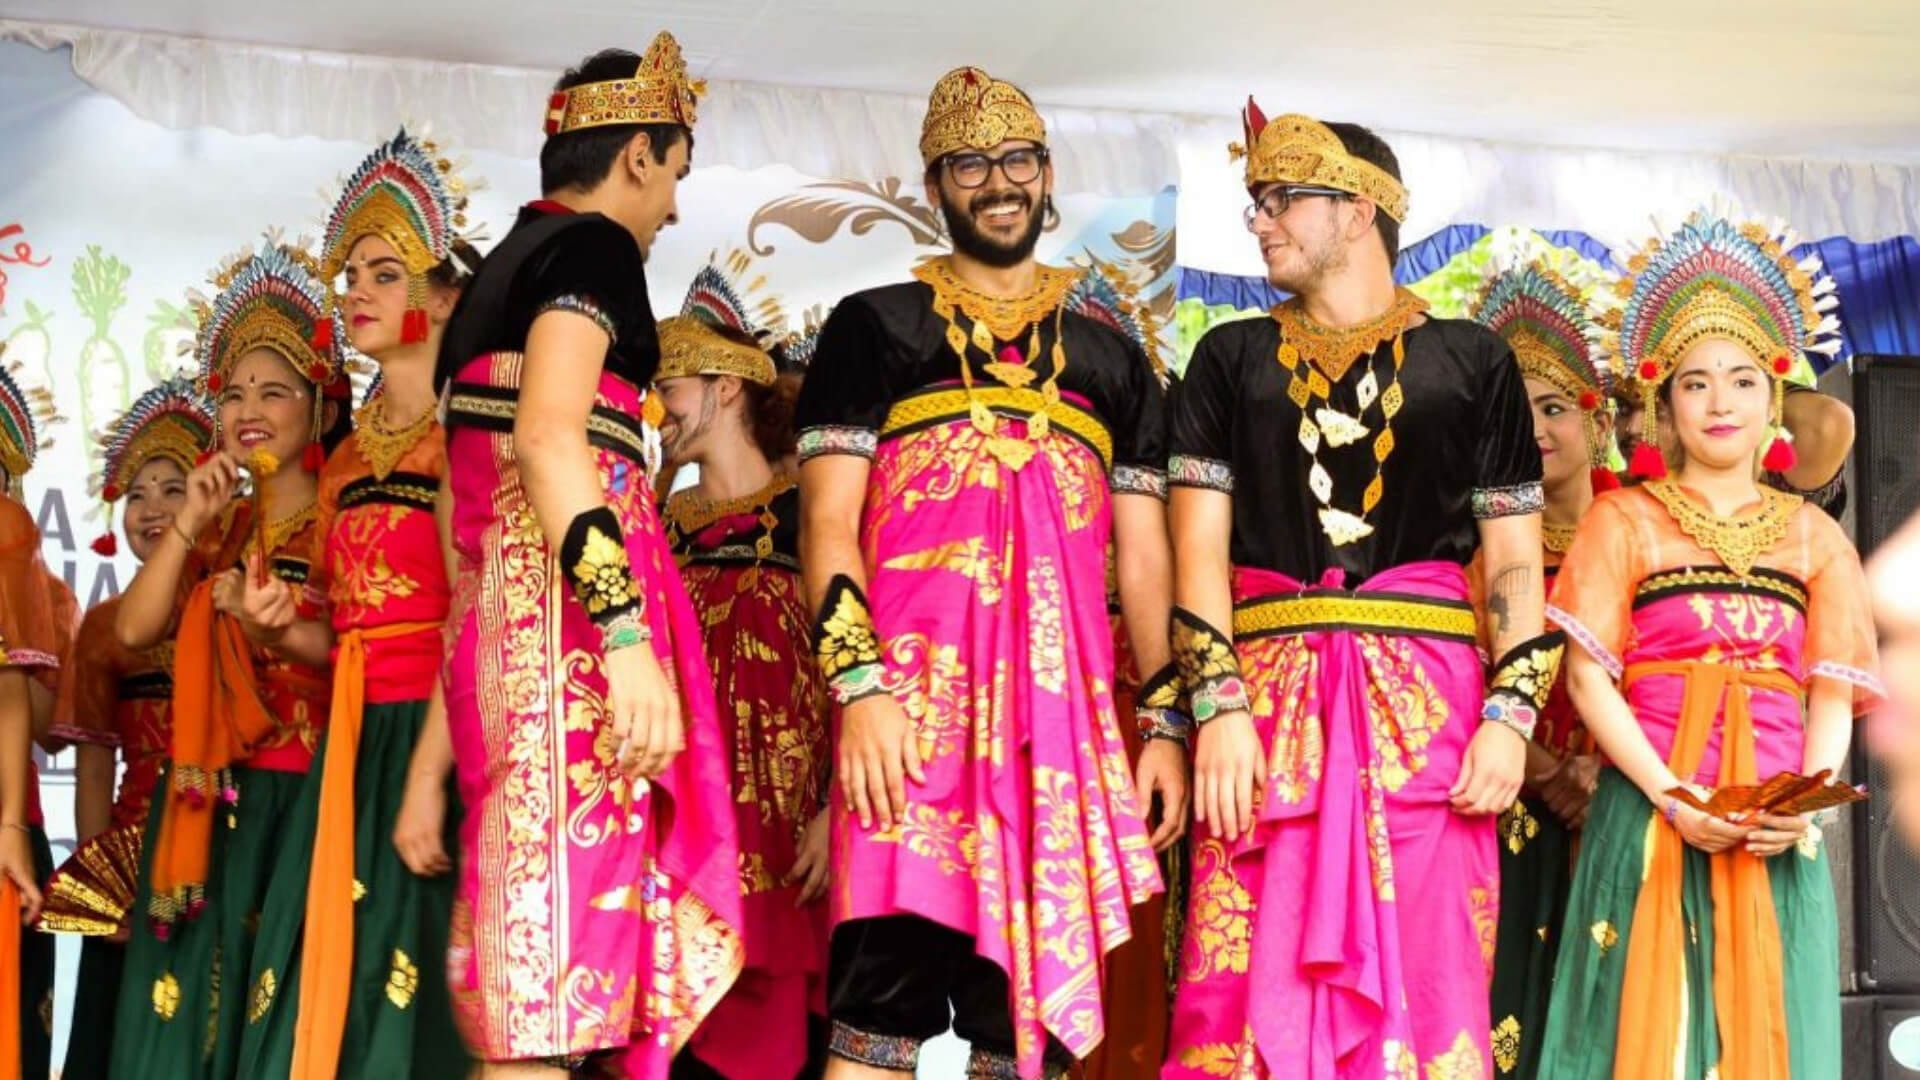 Male students are wearing traditional Balinese clothes on a campus in Bali.